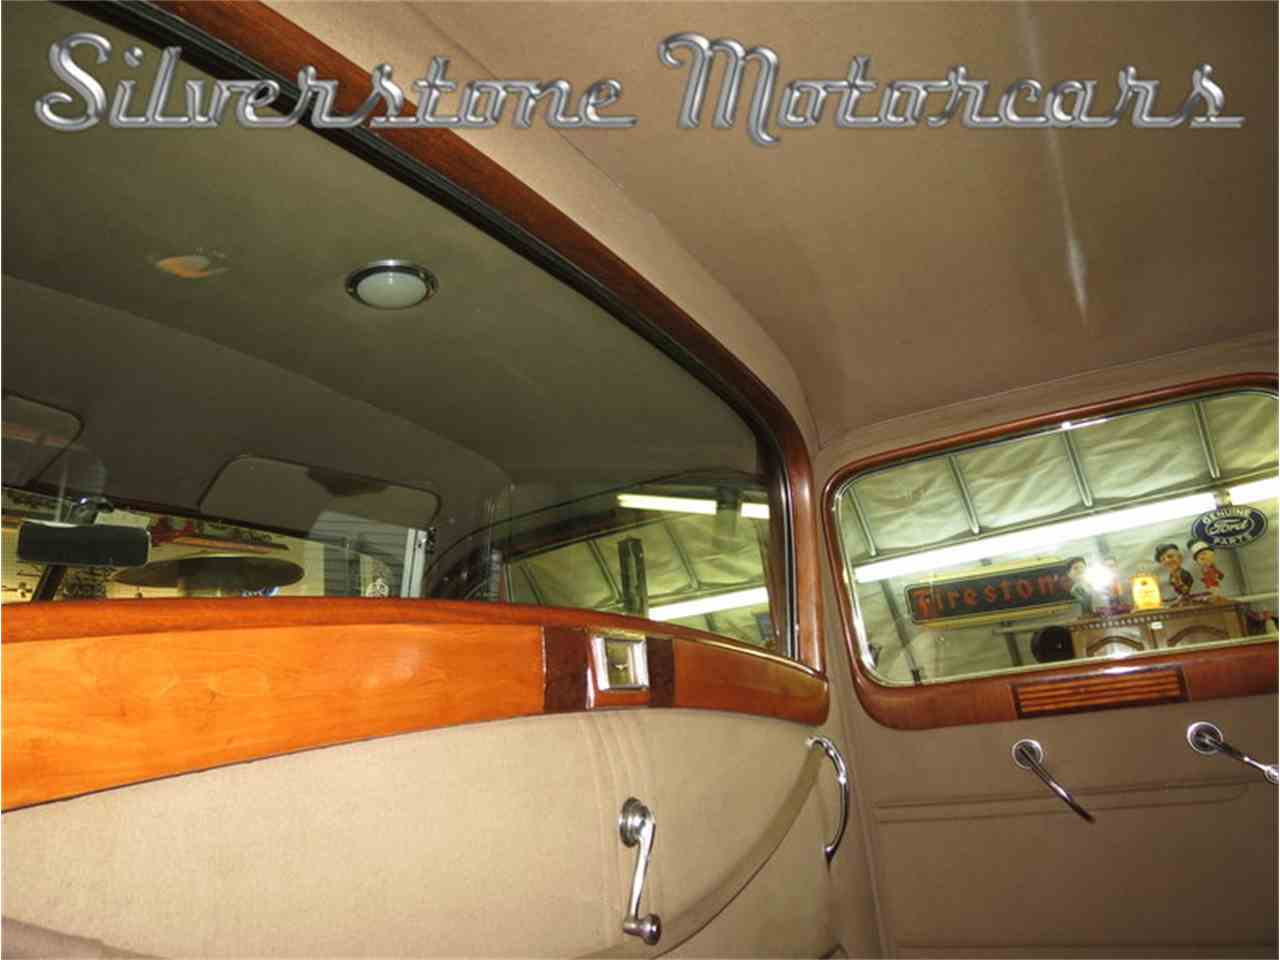 Large Picture of 1939 Fleetwood located in North Andover Massachusetts Auction Vehicle Offered by Silverstone Motorcars - F8HI